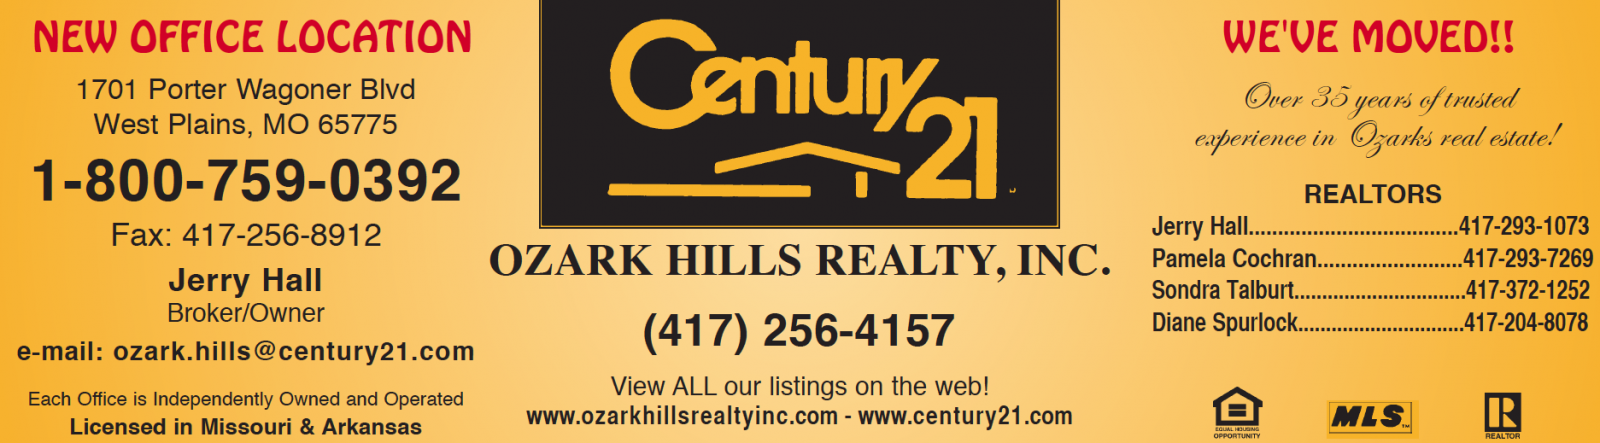 Century 21 Ozark Hills Realty, Inc � Jerry & Sue Hall, Broker/Owners � West Plains, MO Real Estate